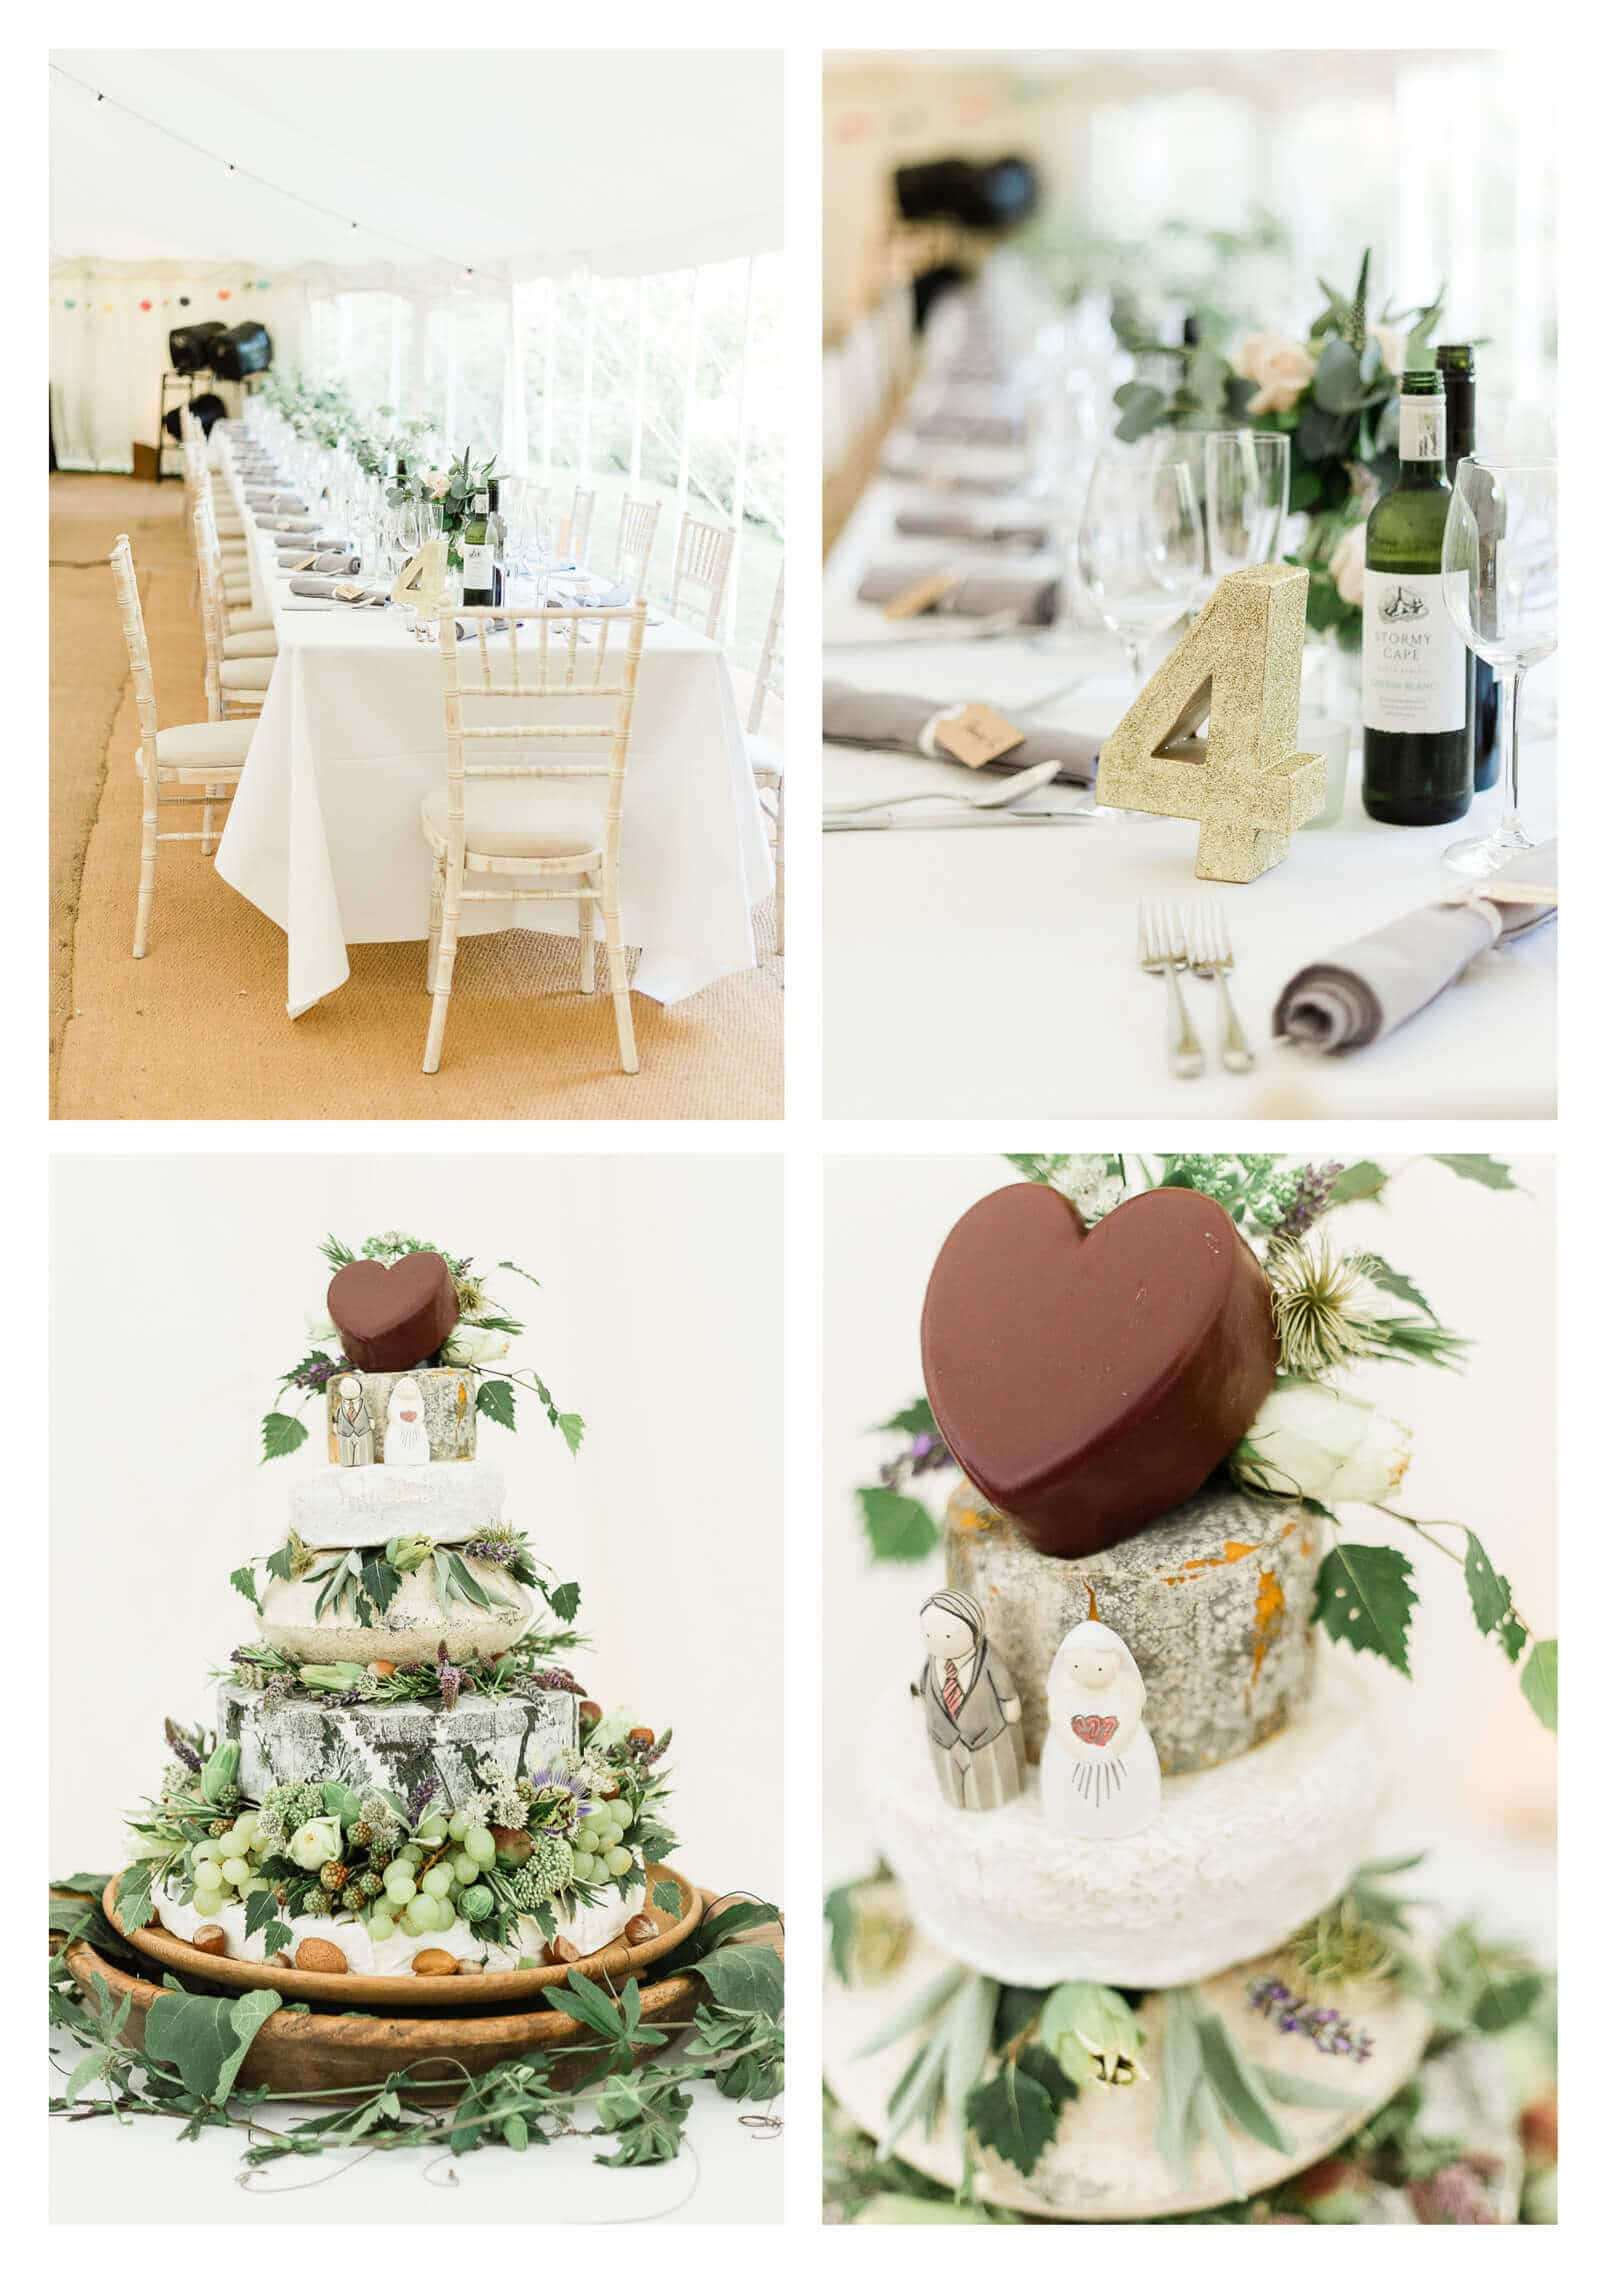 Woolbeding Midhurst marquee estate wedding decor and cheese tiered cake with grapes | West Sussex wedding photographer